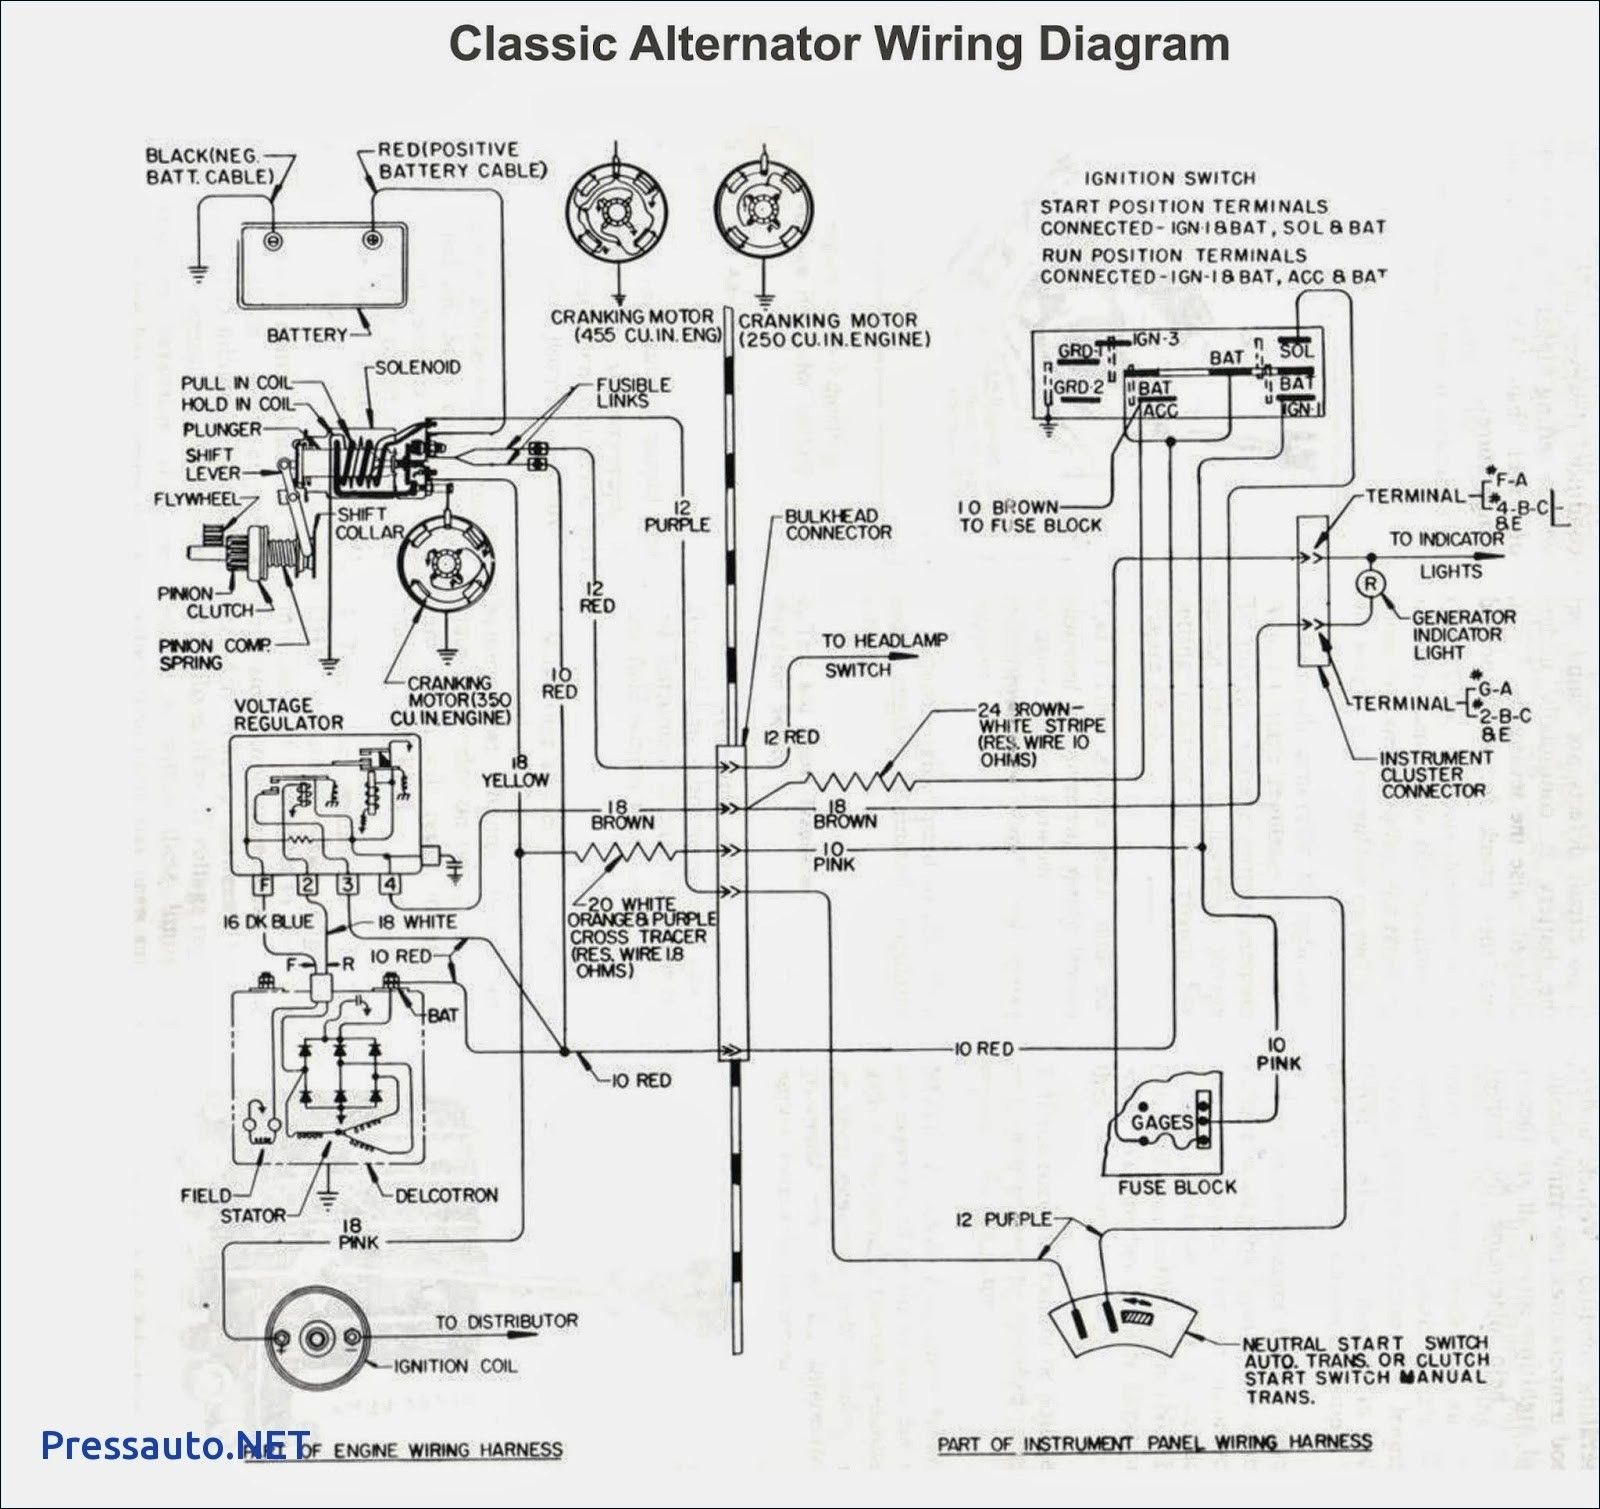 engine coolant wiring diagram, 2006 chaparral 280 signature diagram, alternator parts diagram, mando marine 5.5 amp, mercruiser starter wiring diagram, boat wiring diagram, battery isolator switch wiring diagram, verizon connection diagram, troubleshooting diagram, alternator connections diagram, marine chevy 350 starter wiring diagram, mando marine alternator diagram, southern motion wire diagram, scout alternator diagram, 3 wire alternator diagram, on mando alternator wiring diagram 4 wire